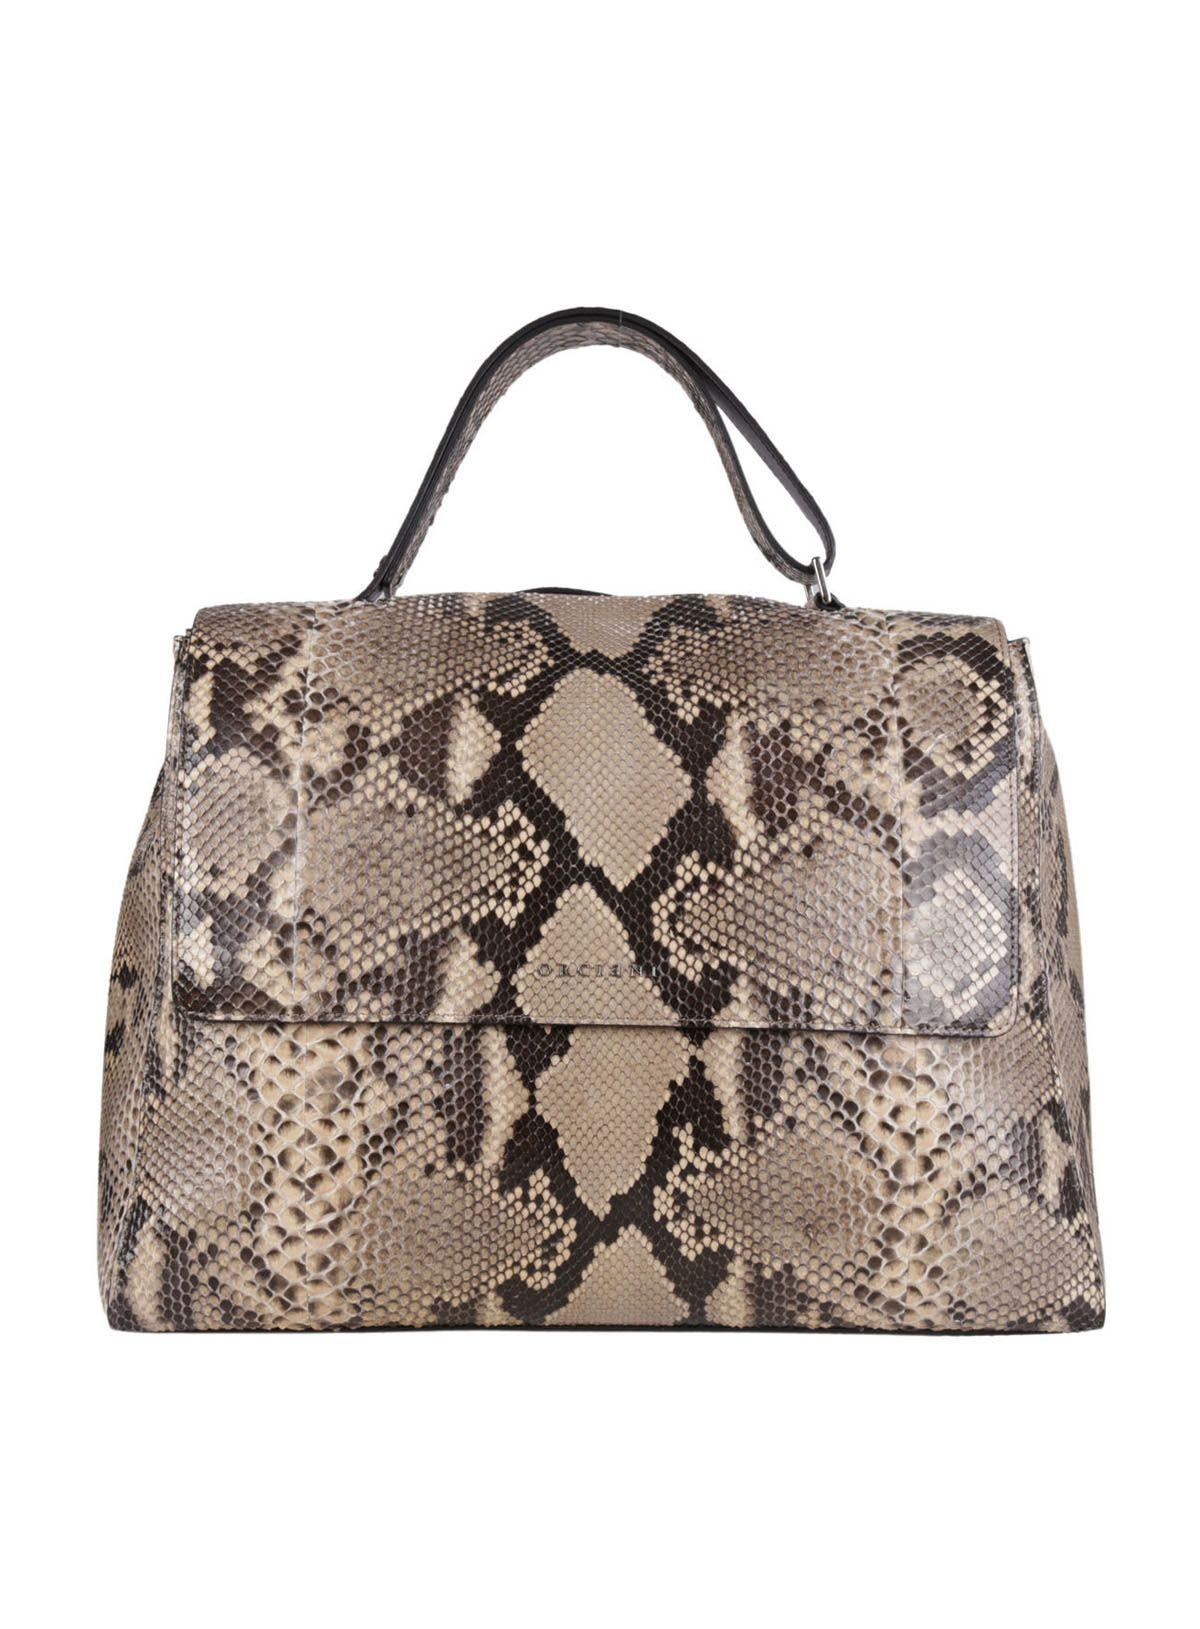 Orciani Snake Effect Top Handle Tote